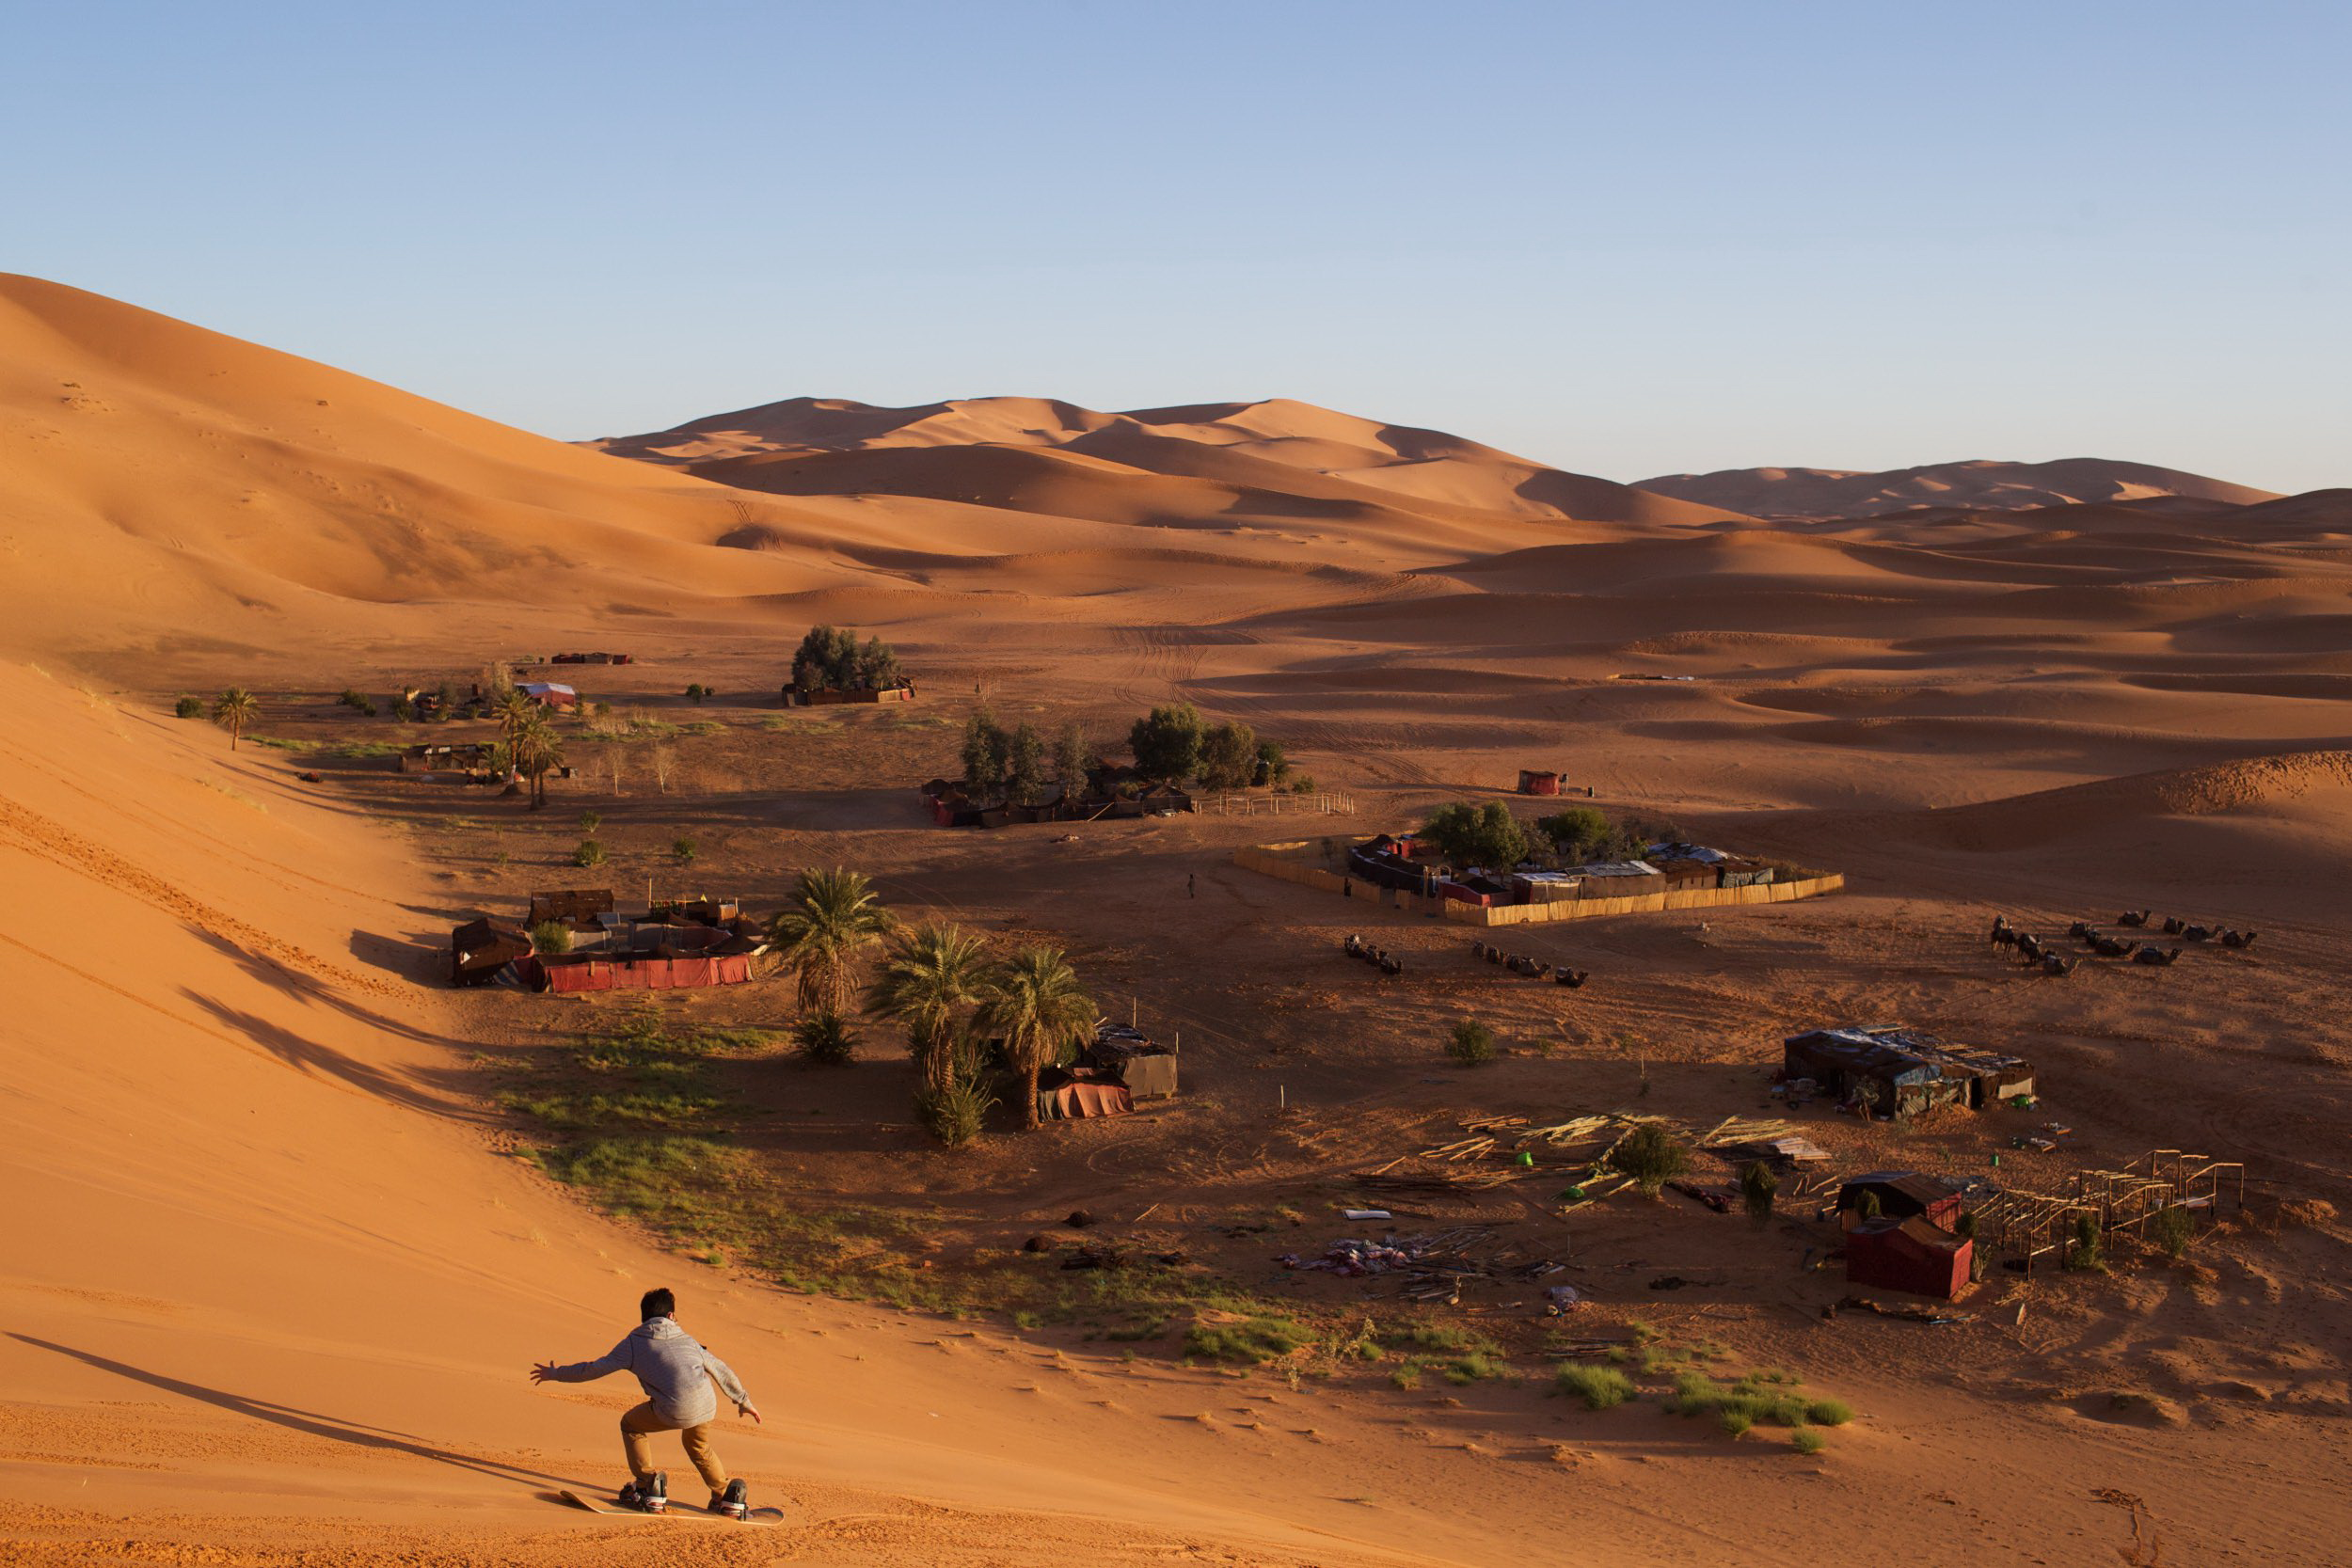 A Chinese tourist in the dunes of the Sahara Desert tries his hand at sandboarding for the first time during an overnight camping trip with classmates. 2nd place POYi this year, Recreational Sports.© Sol Neelman